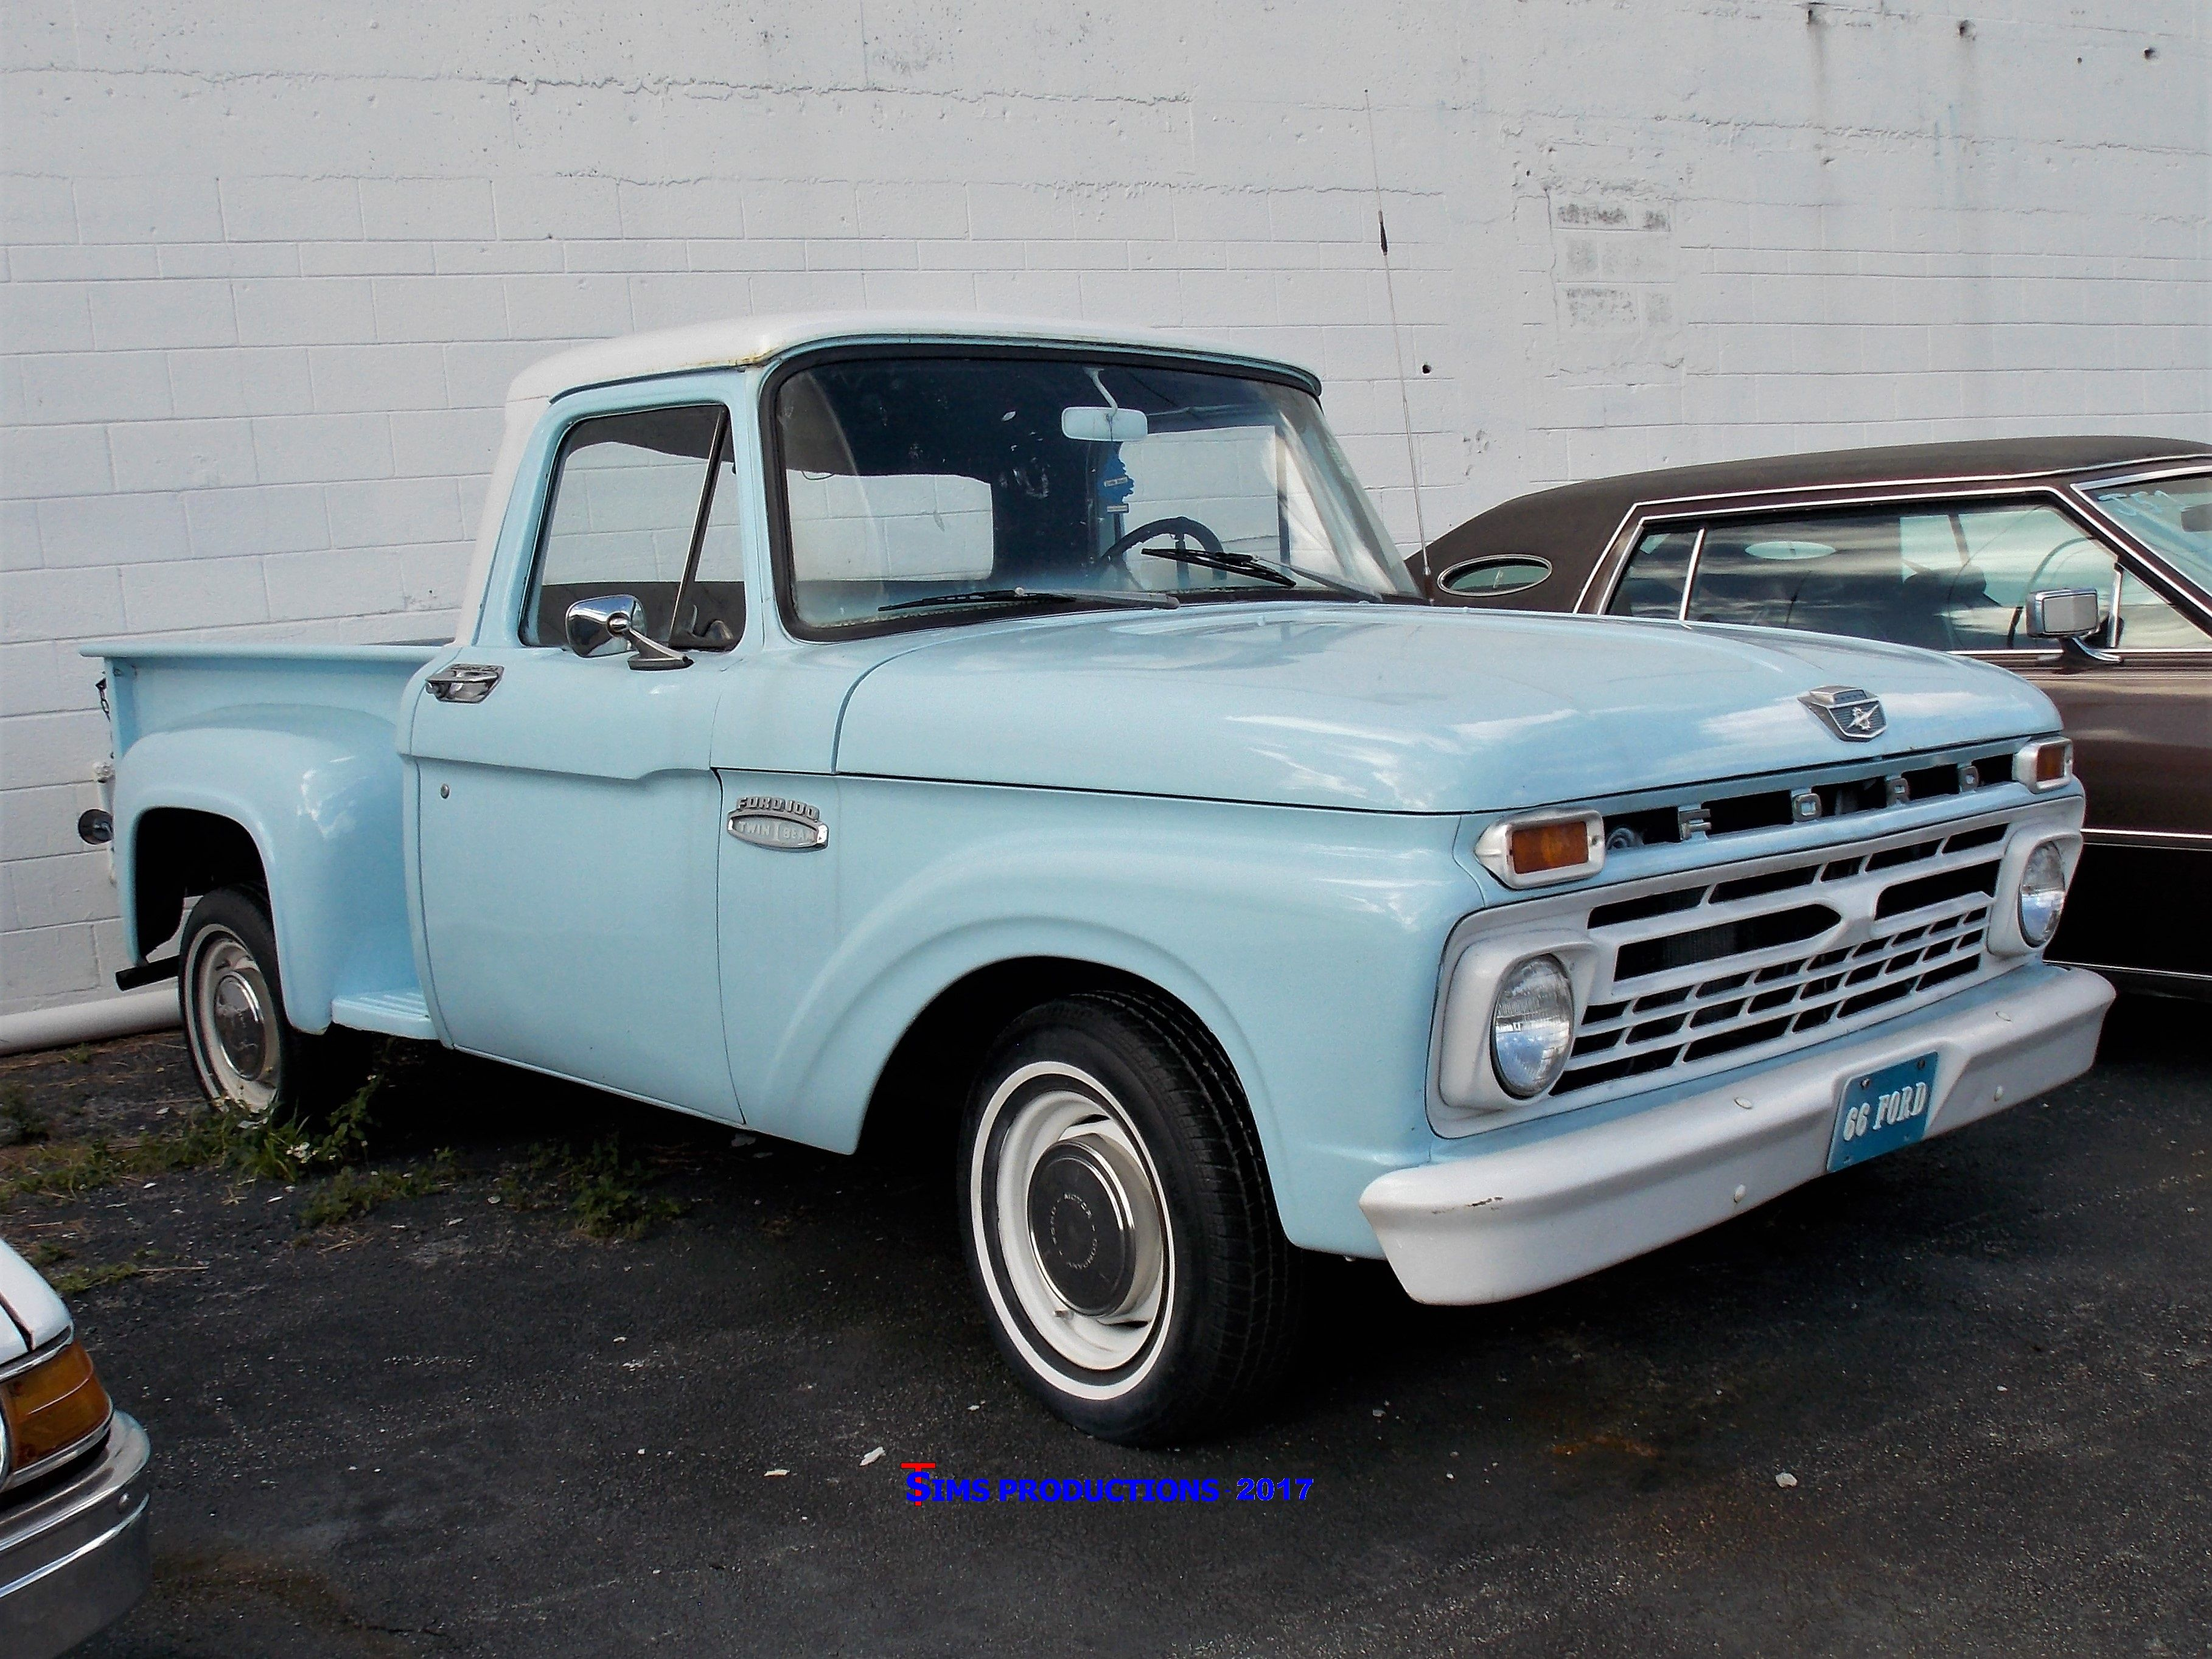 hight resolution of 1966 ford f100 stepside pickup truck vintageauto antiqueauto